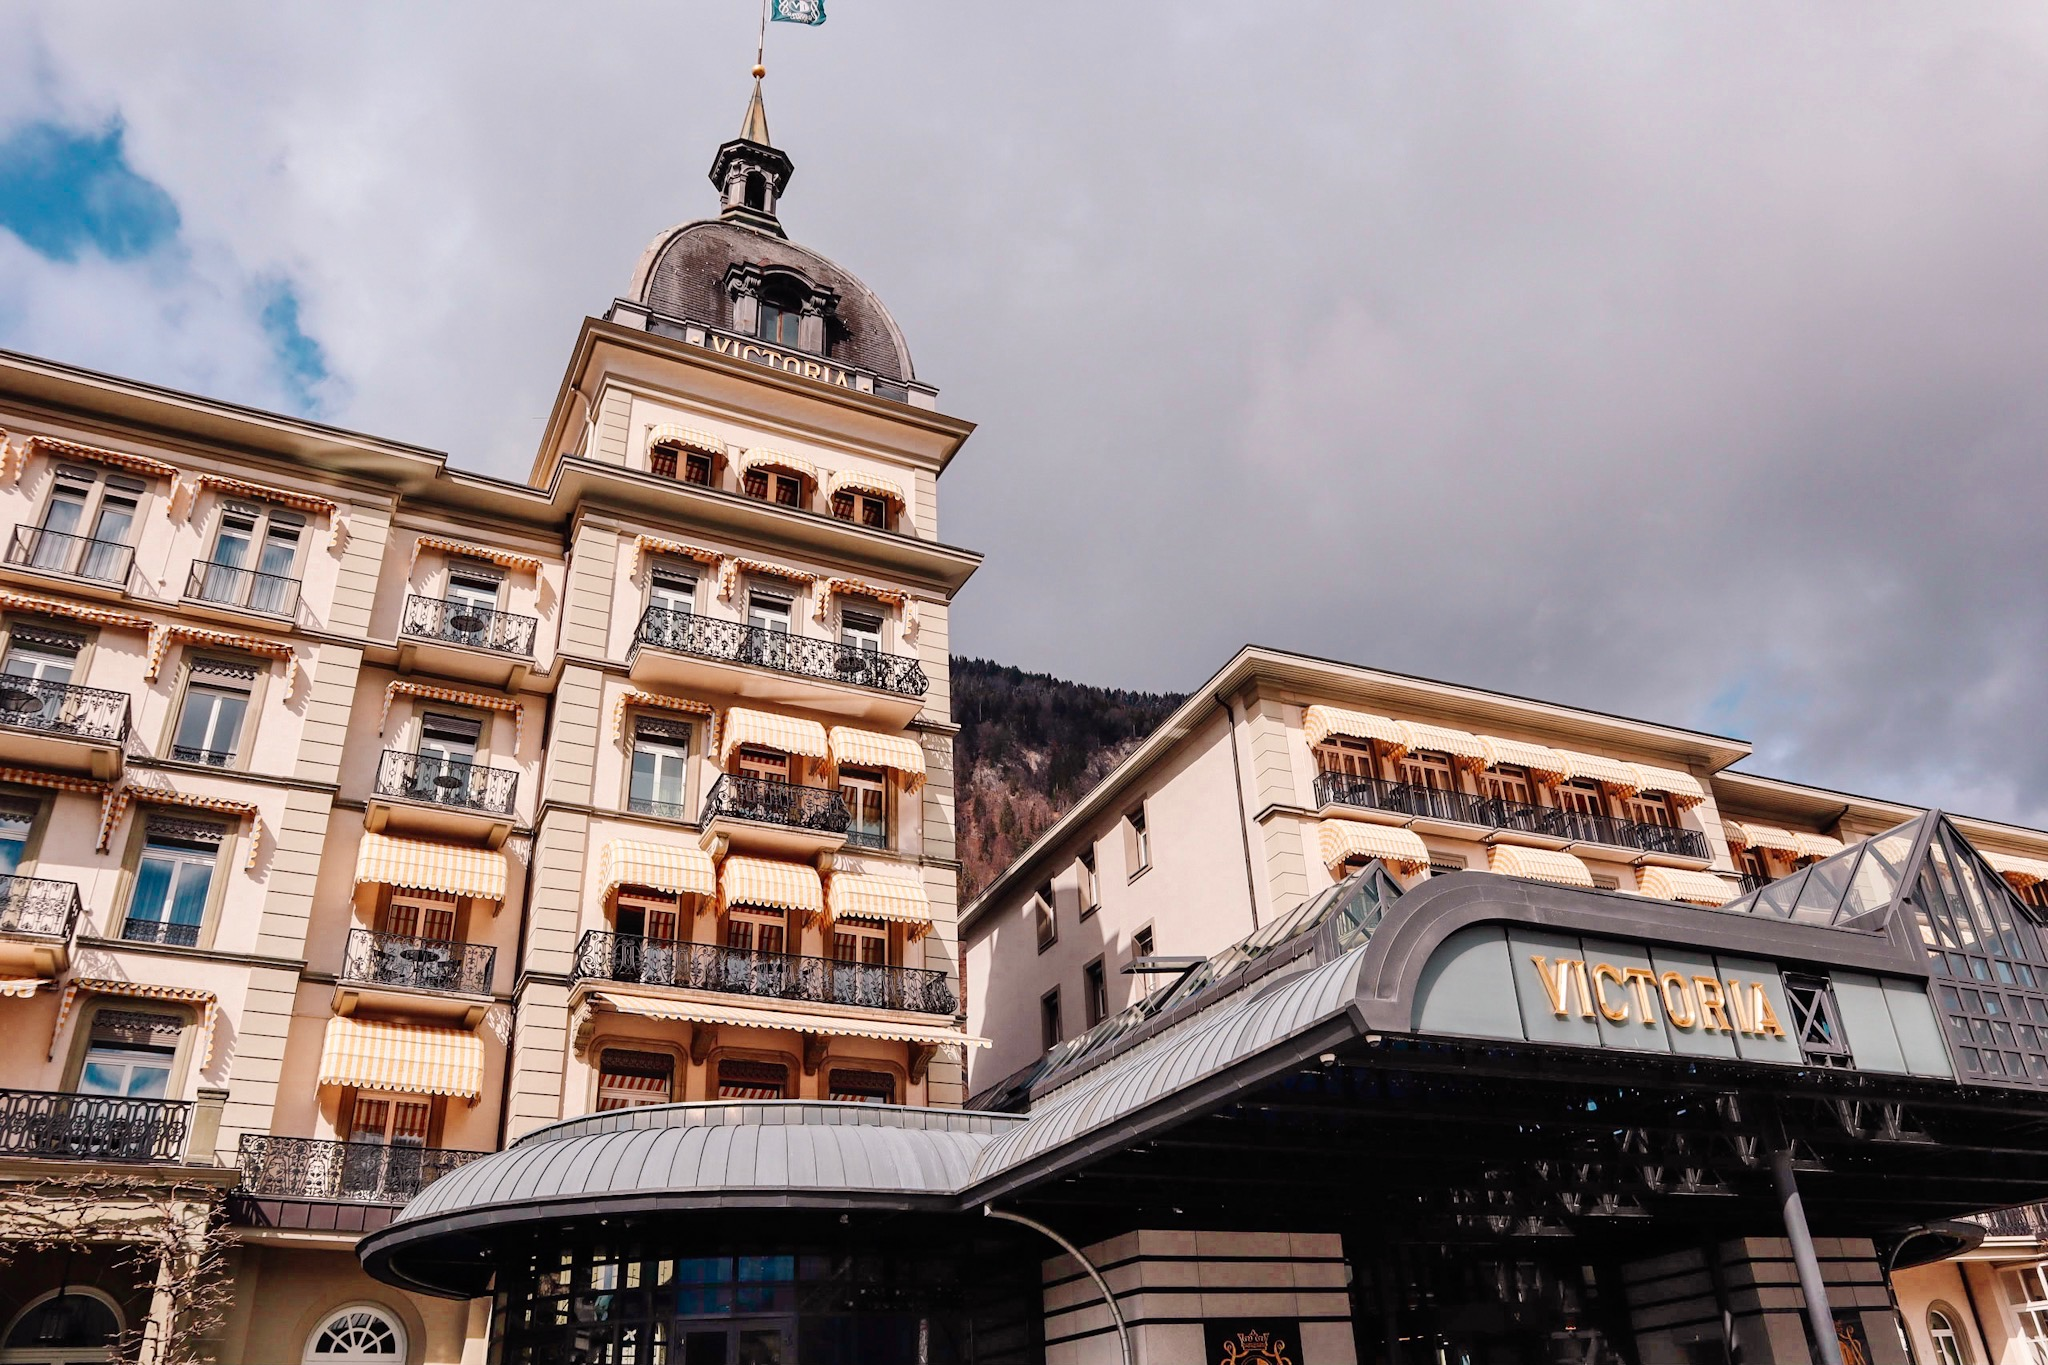 If you want to go crazy and stay in a fancy hotel, the  Victoria Hotel  is practically a historic monument and is in fact where Mark Twain stayed when he traveled to Interlaken.